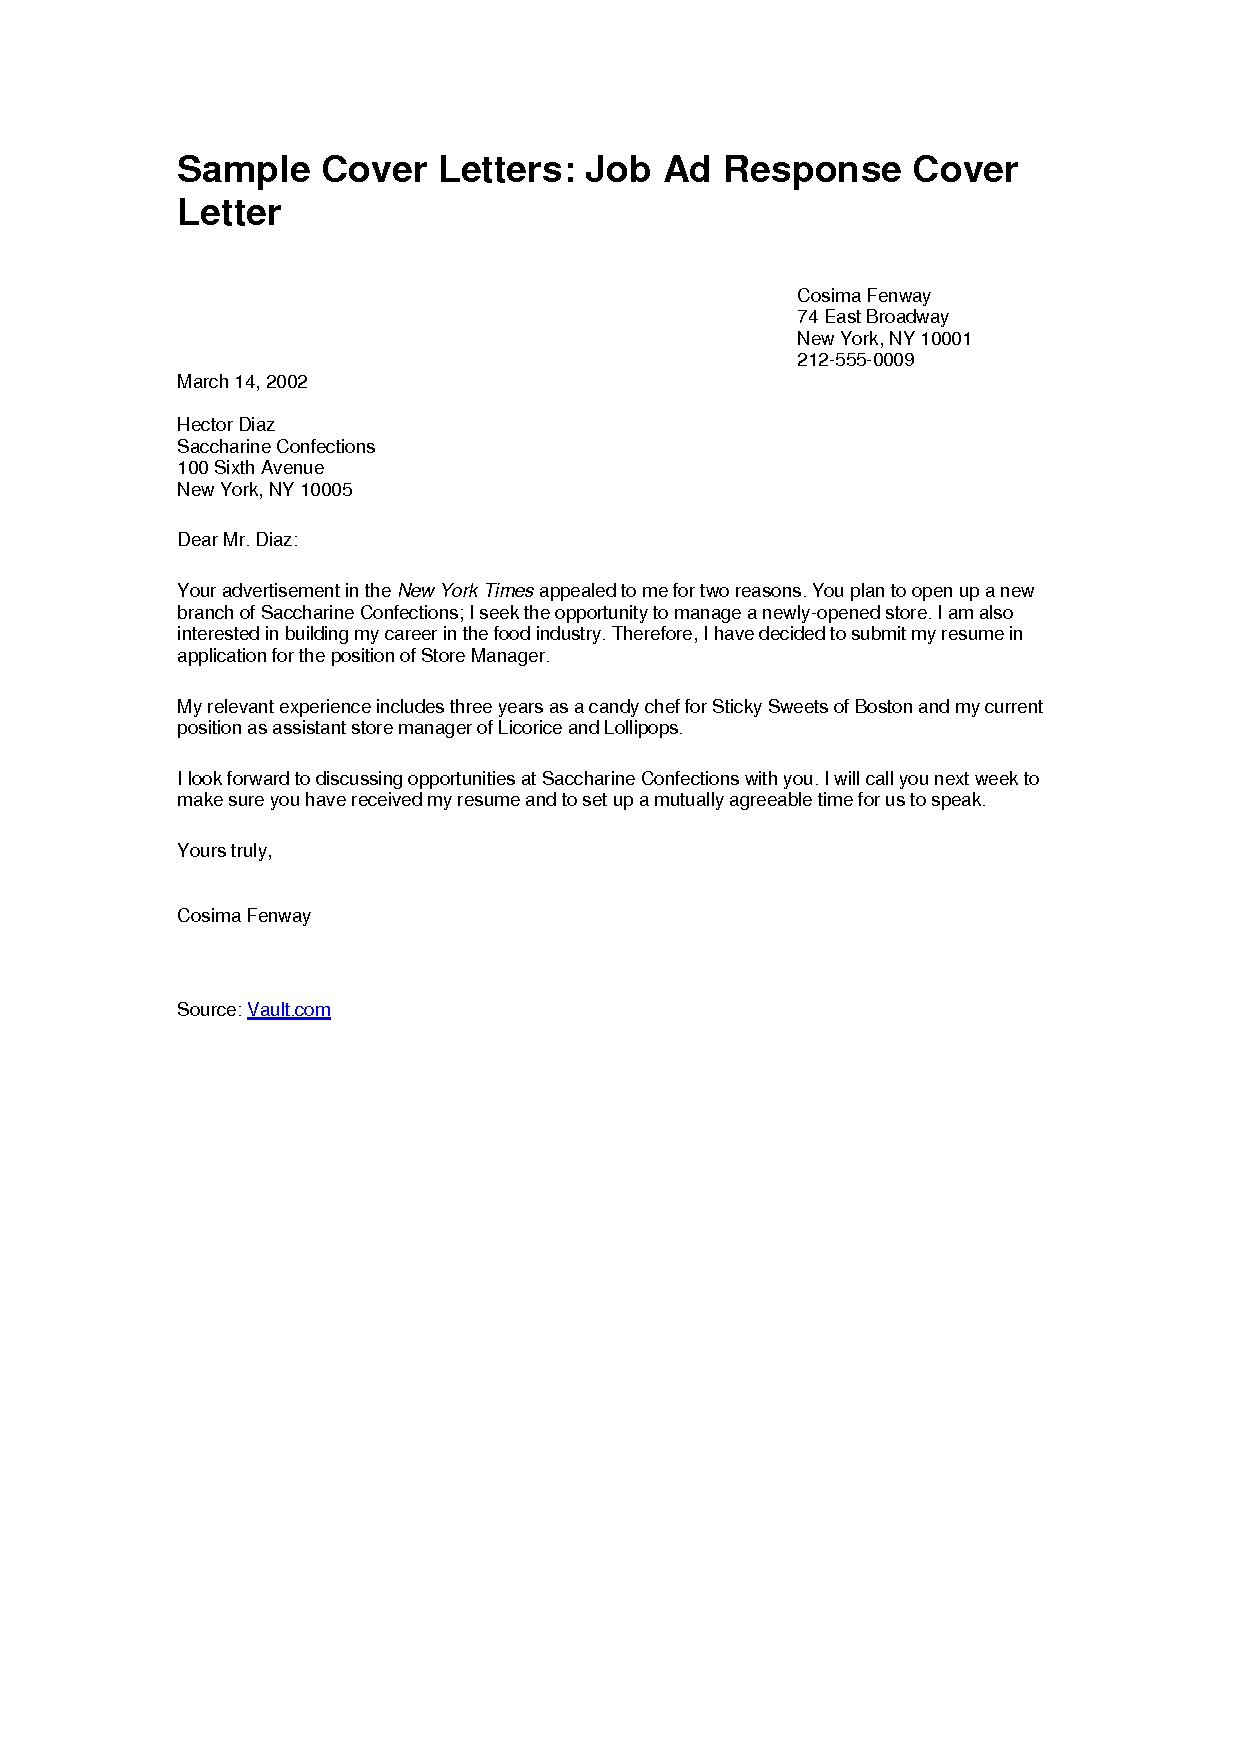 Sample Cover Letter Template - Samples Of Job Cover Letters Acurnamedia